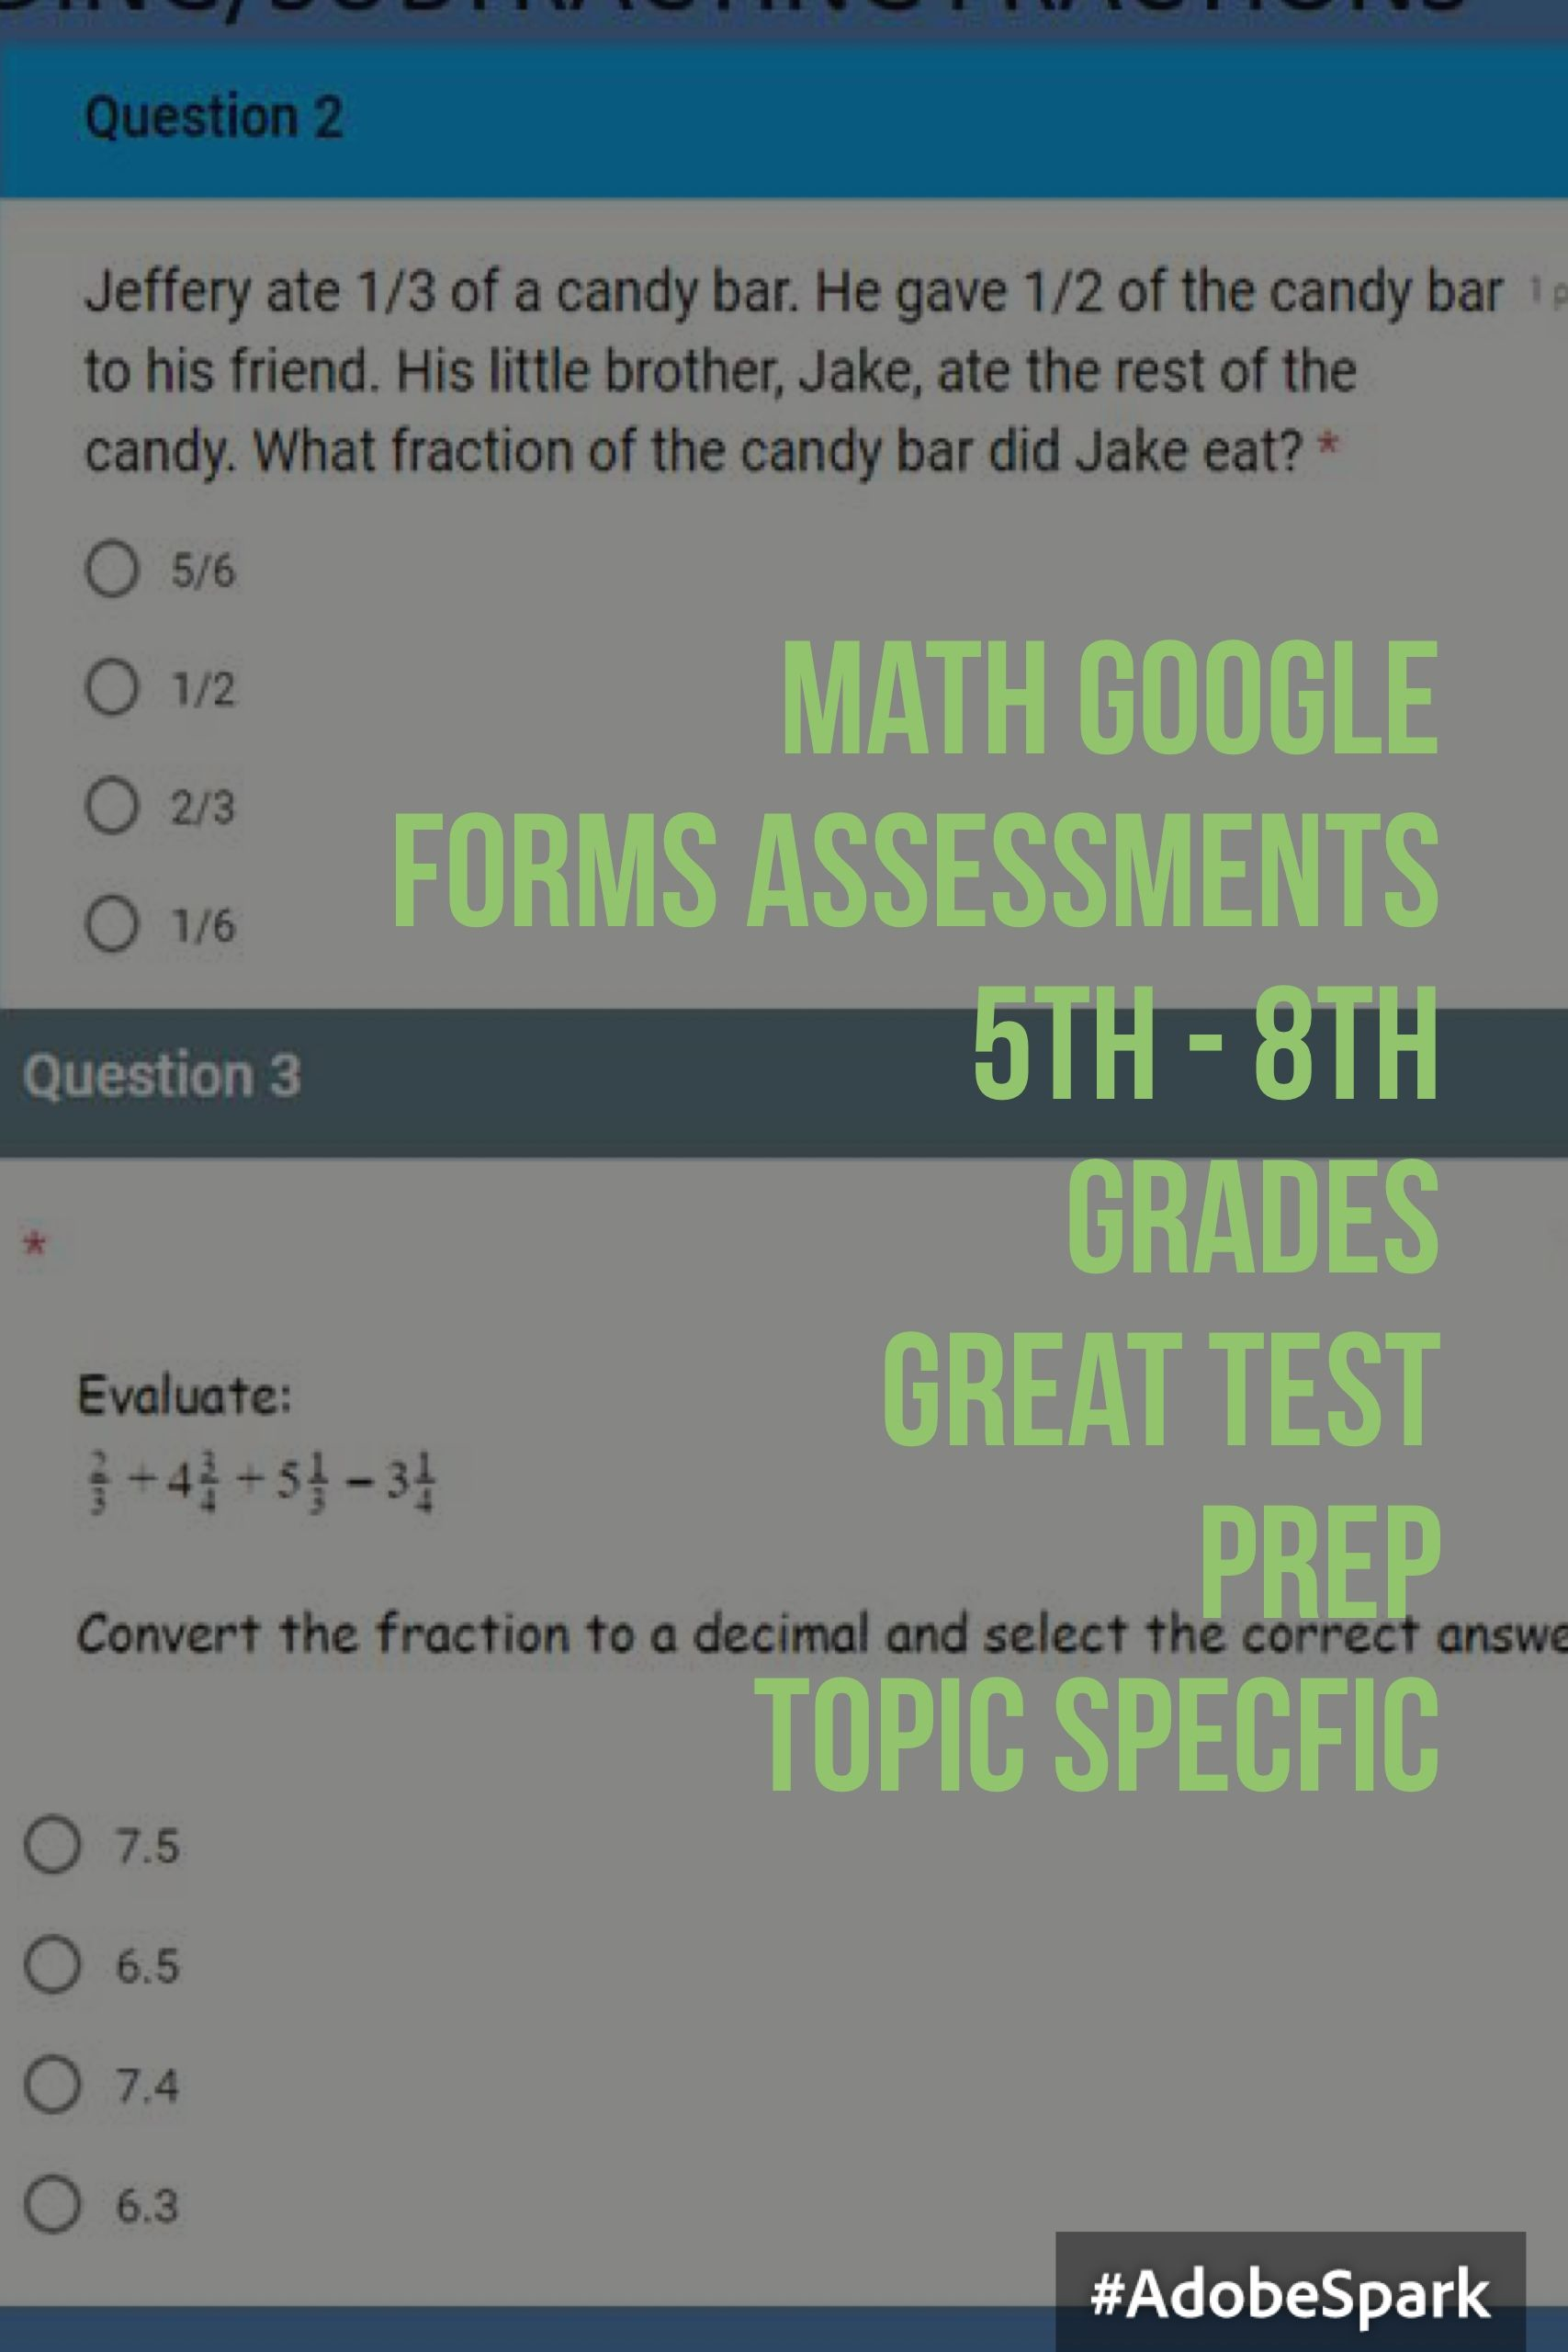 Mostly self-grading math Google Forms Assessments